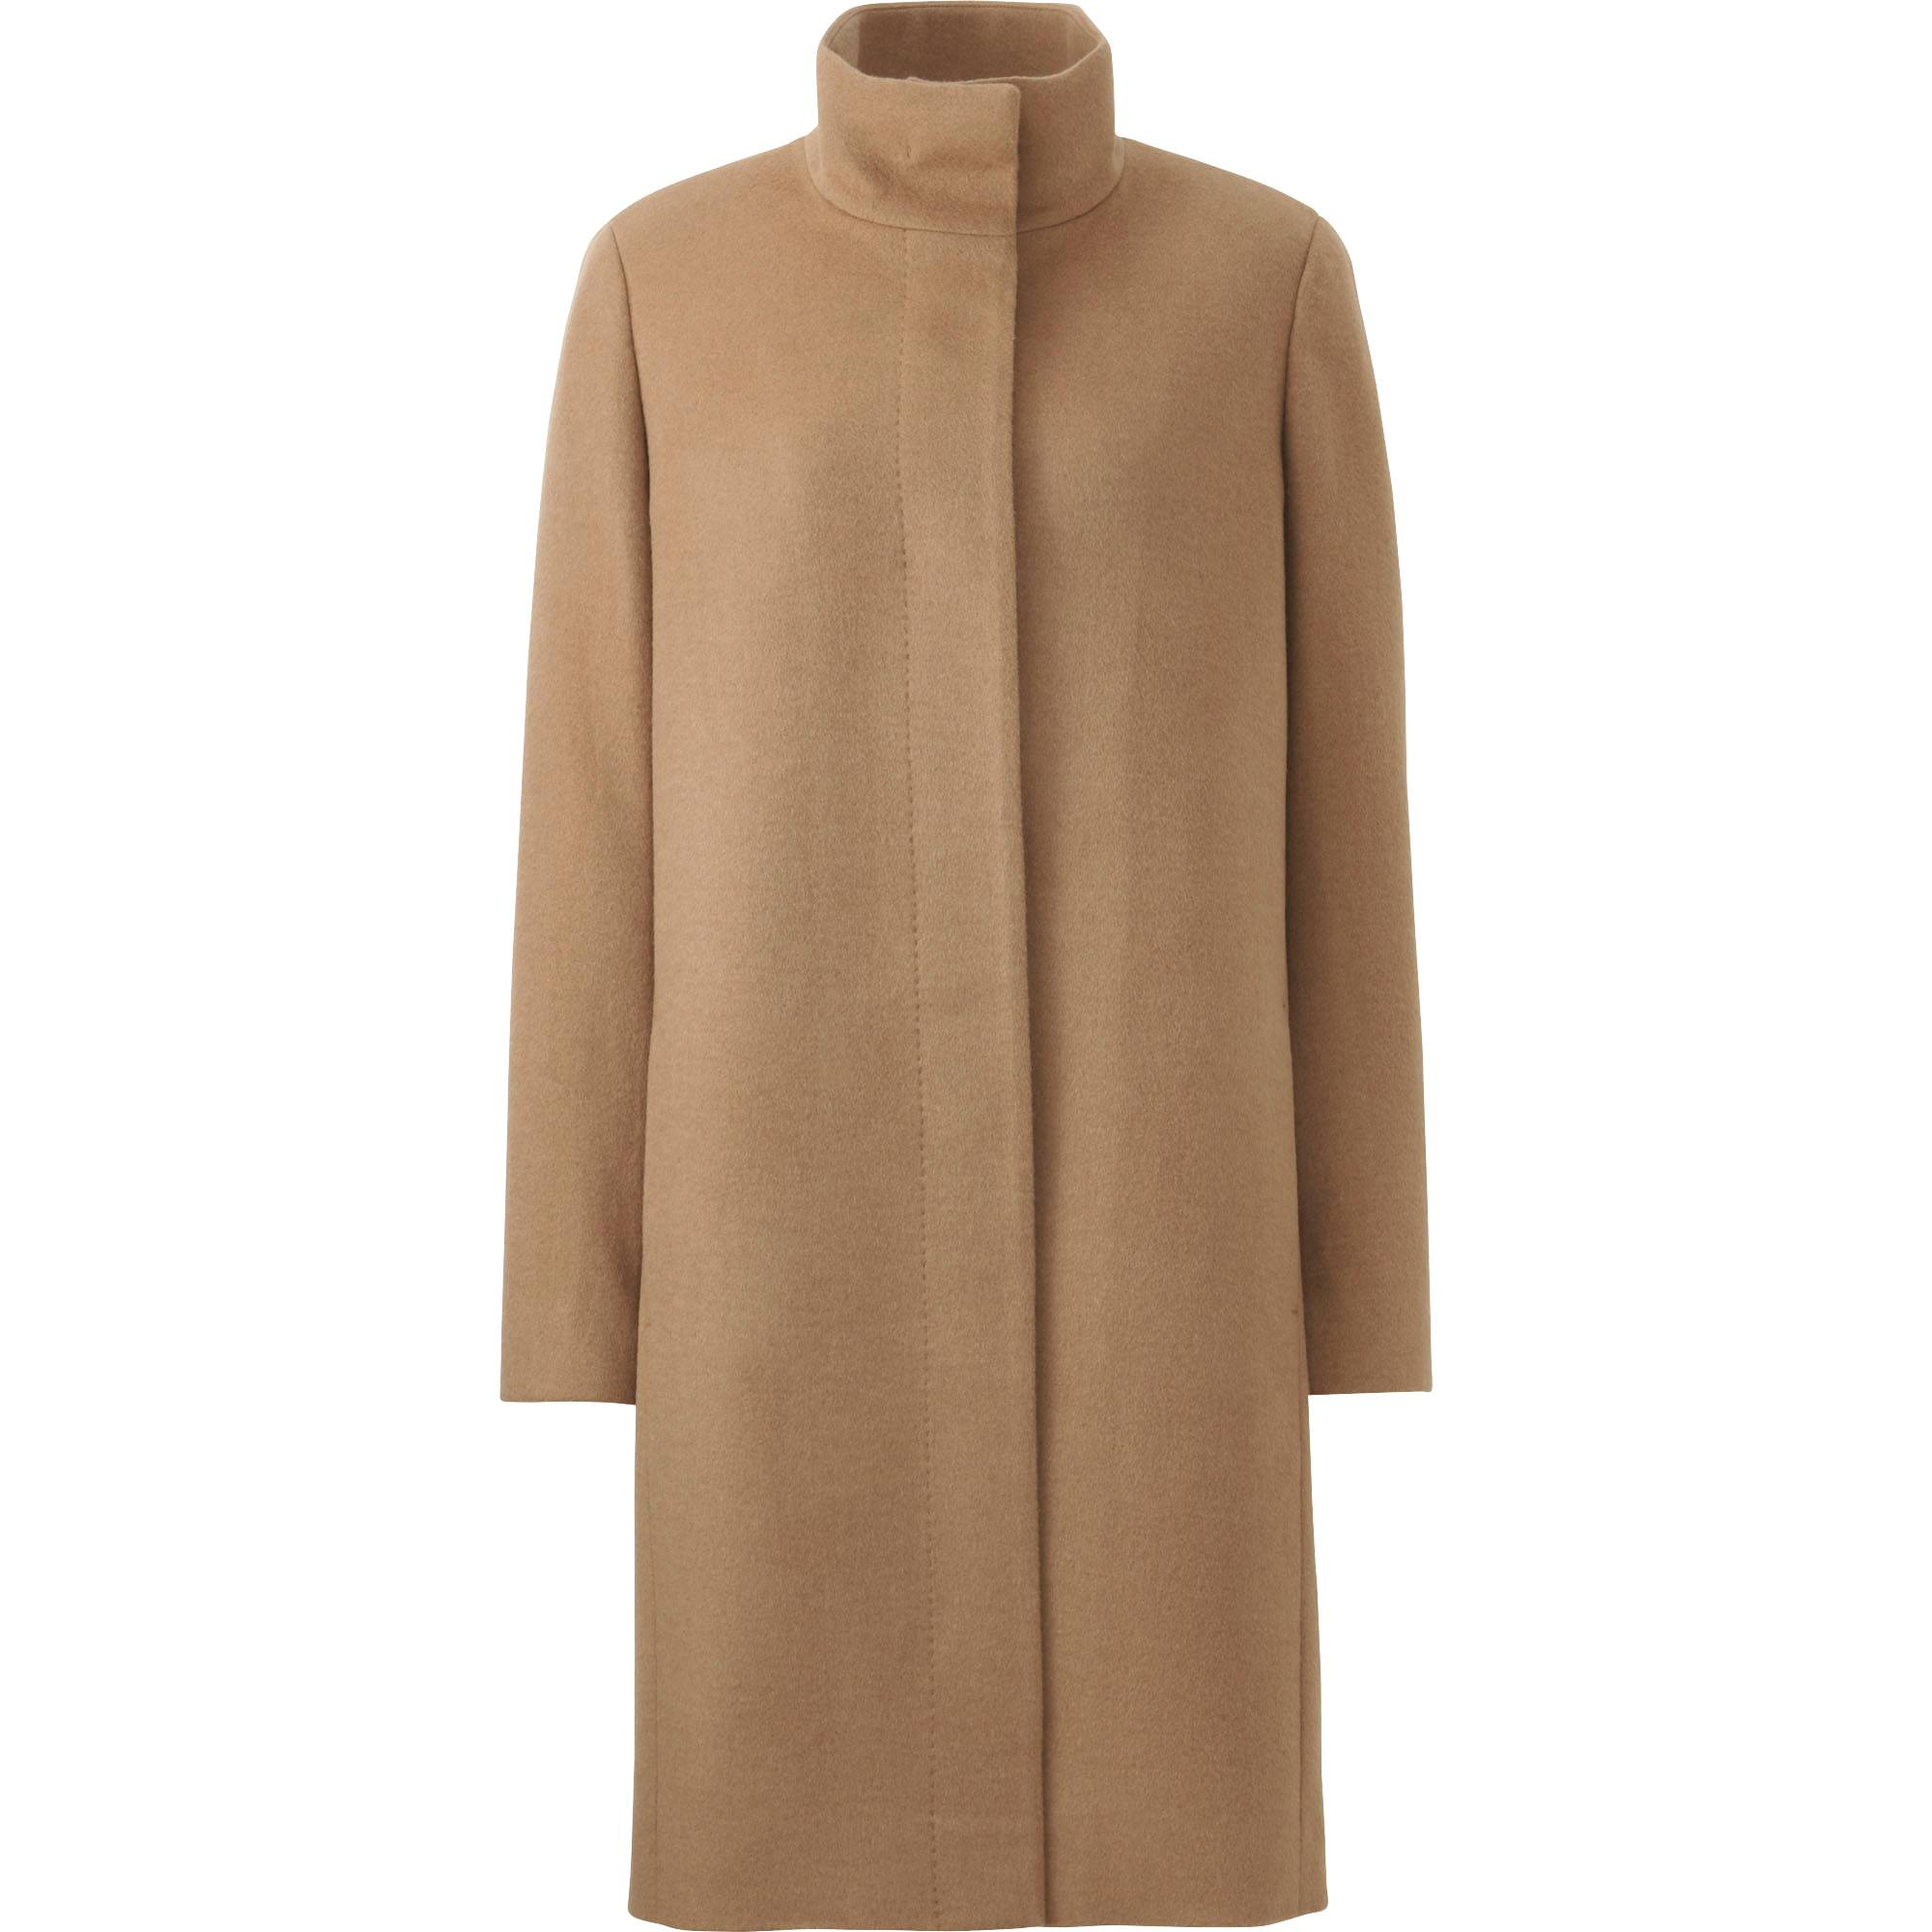 WOMEN CASHMERE BLENDED STAND COLLAR COAT | UNIQLO US